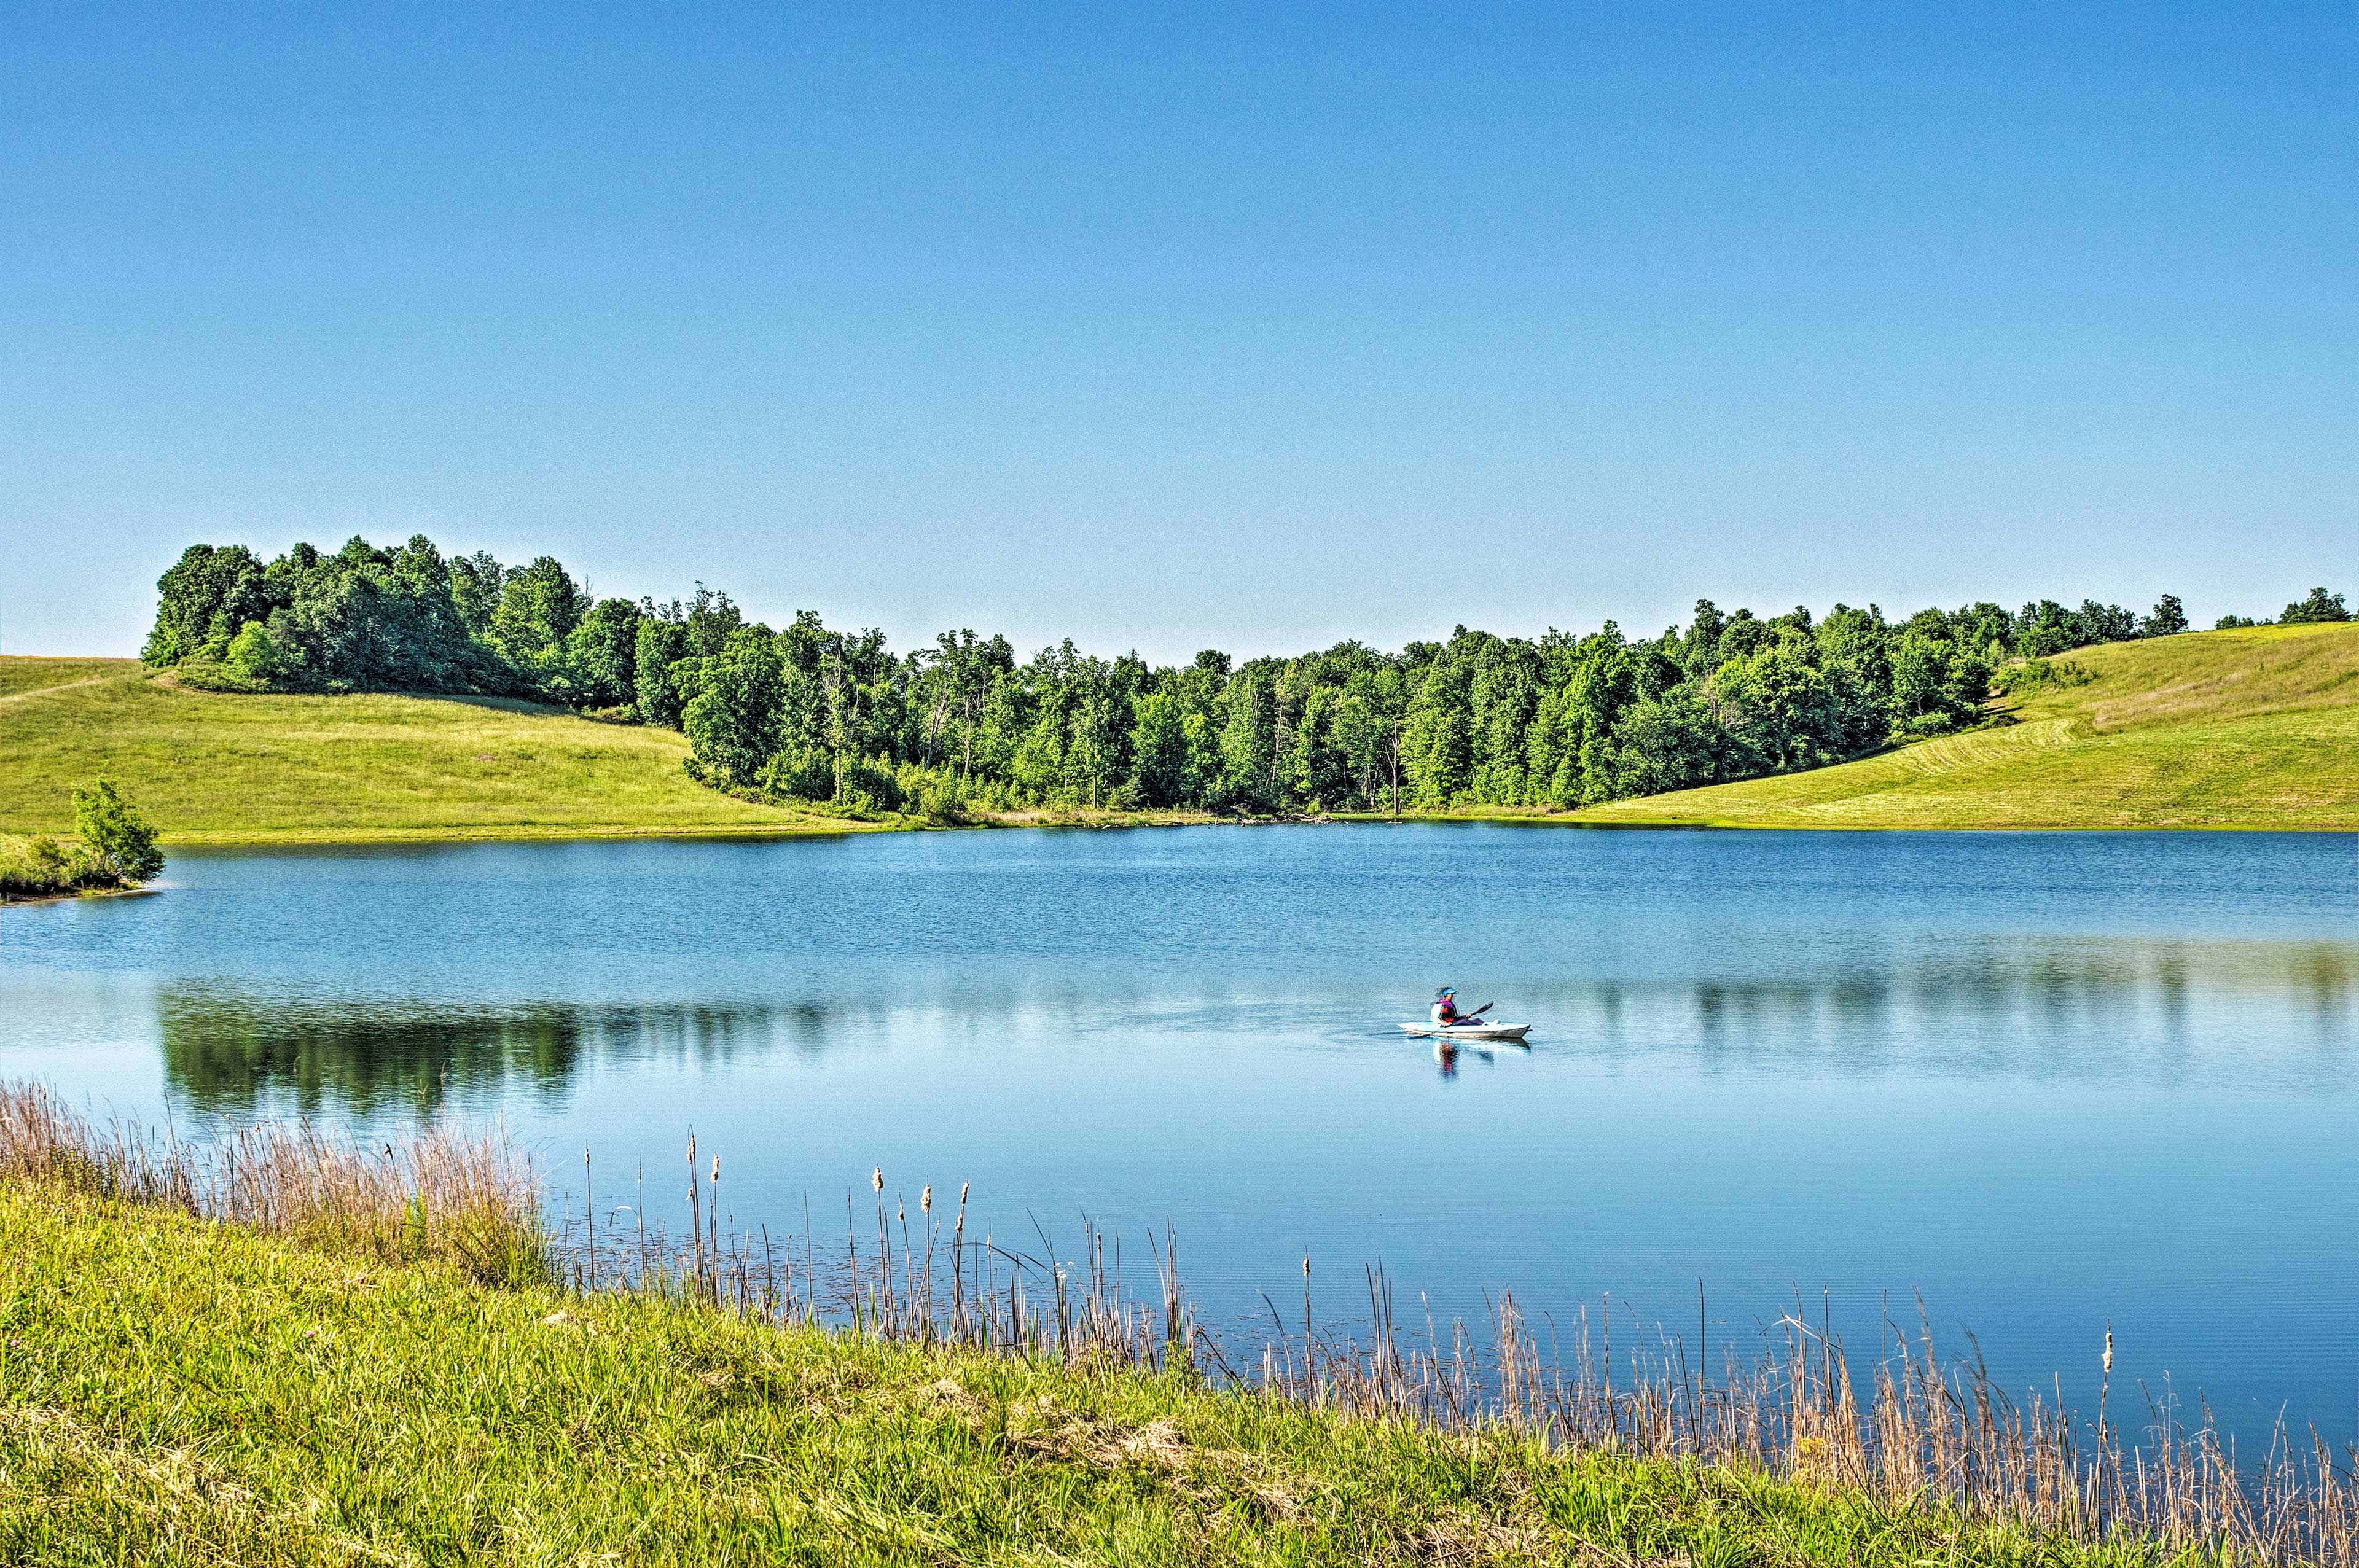 Spend relaxing afternoons paddling on the lake.